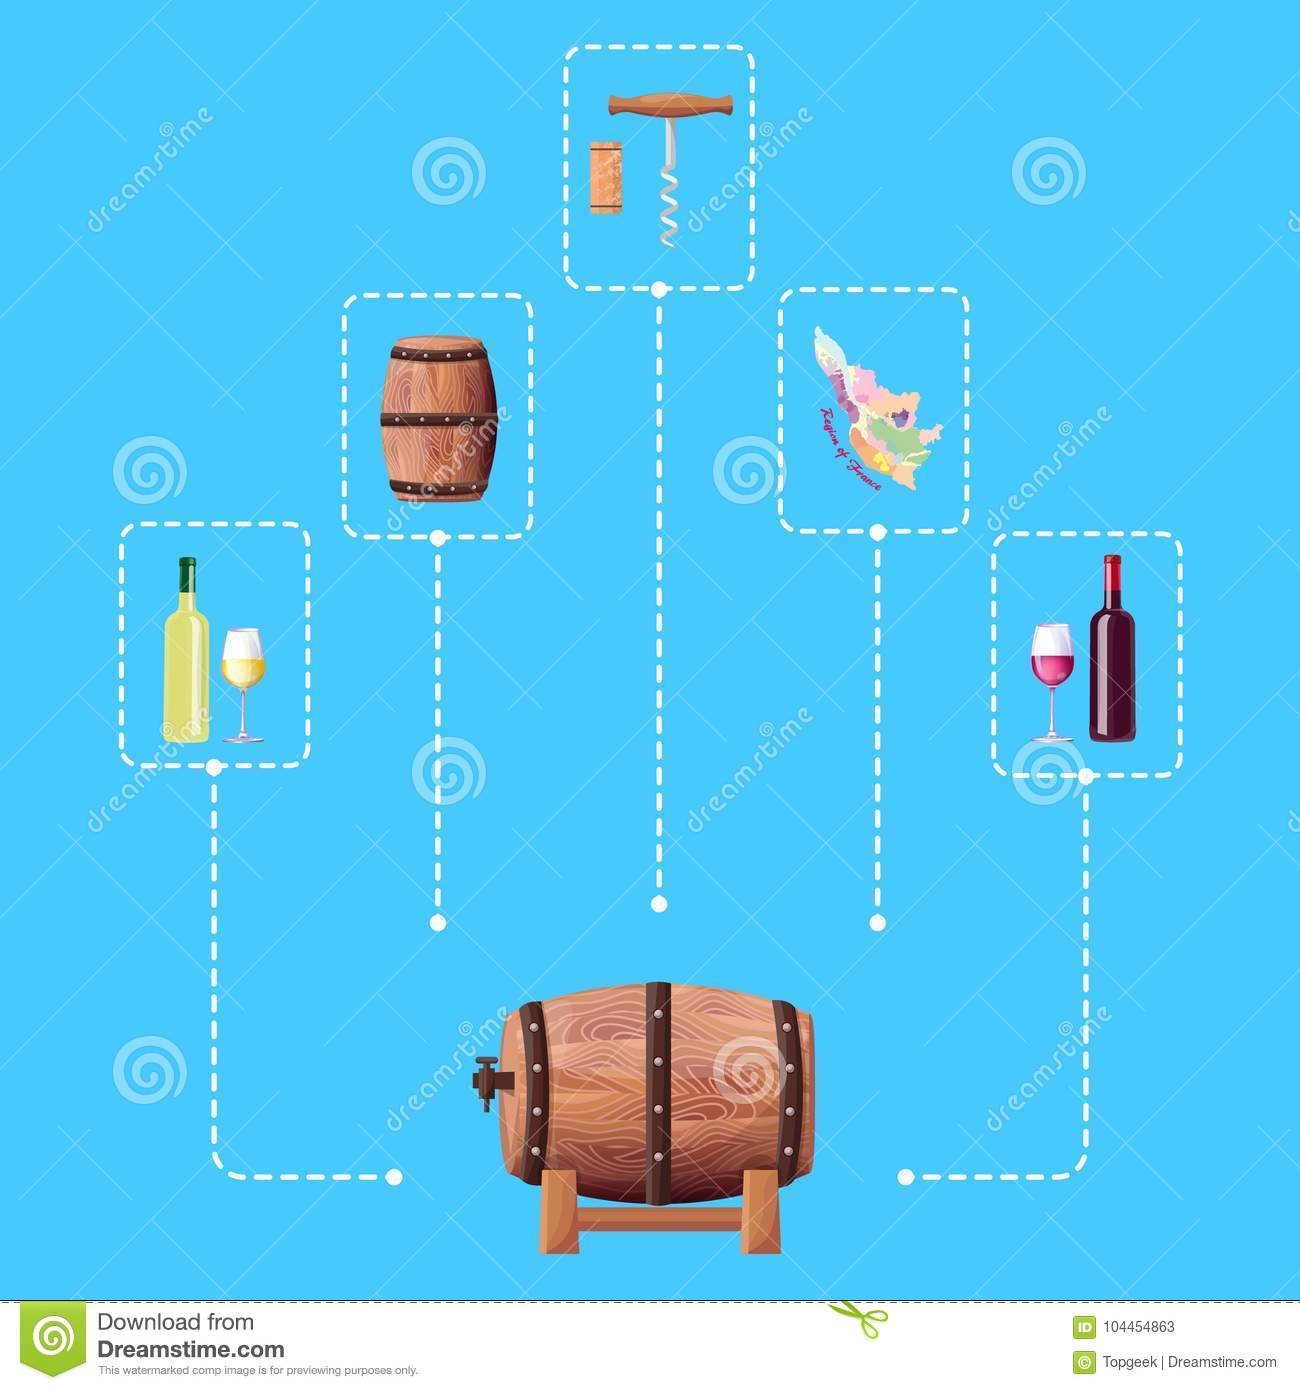 Wine Barrel and Connected Icon Vector Illustration